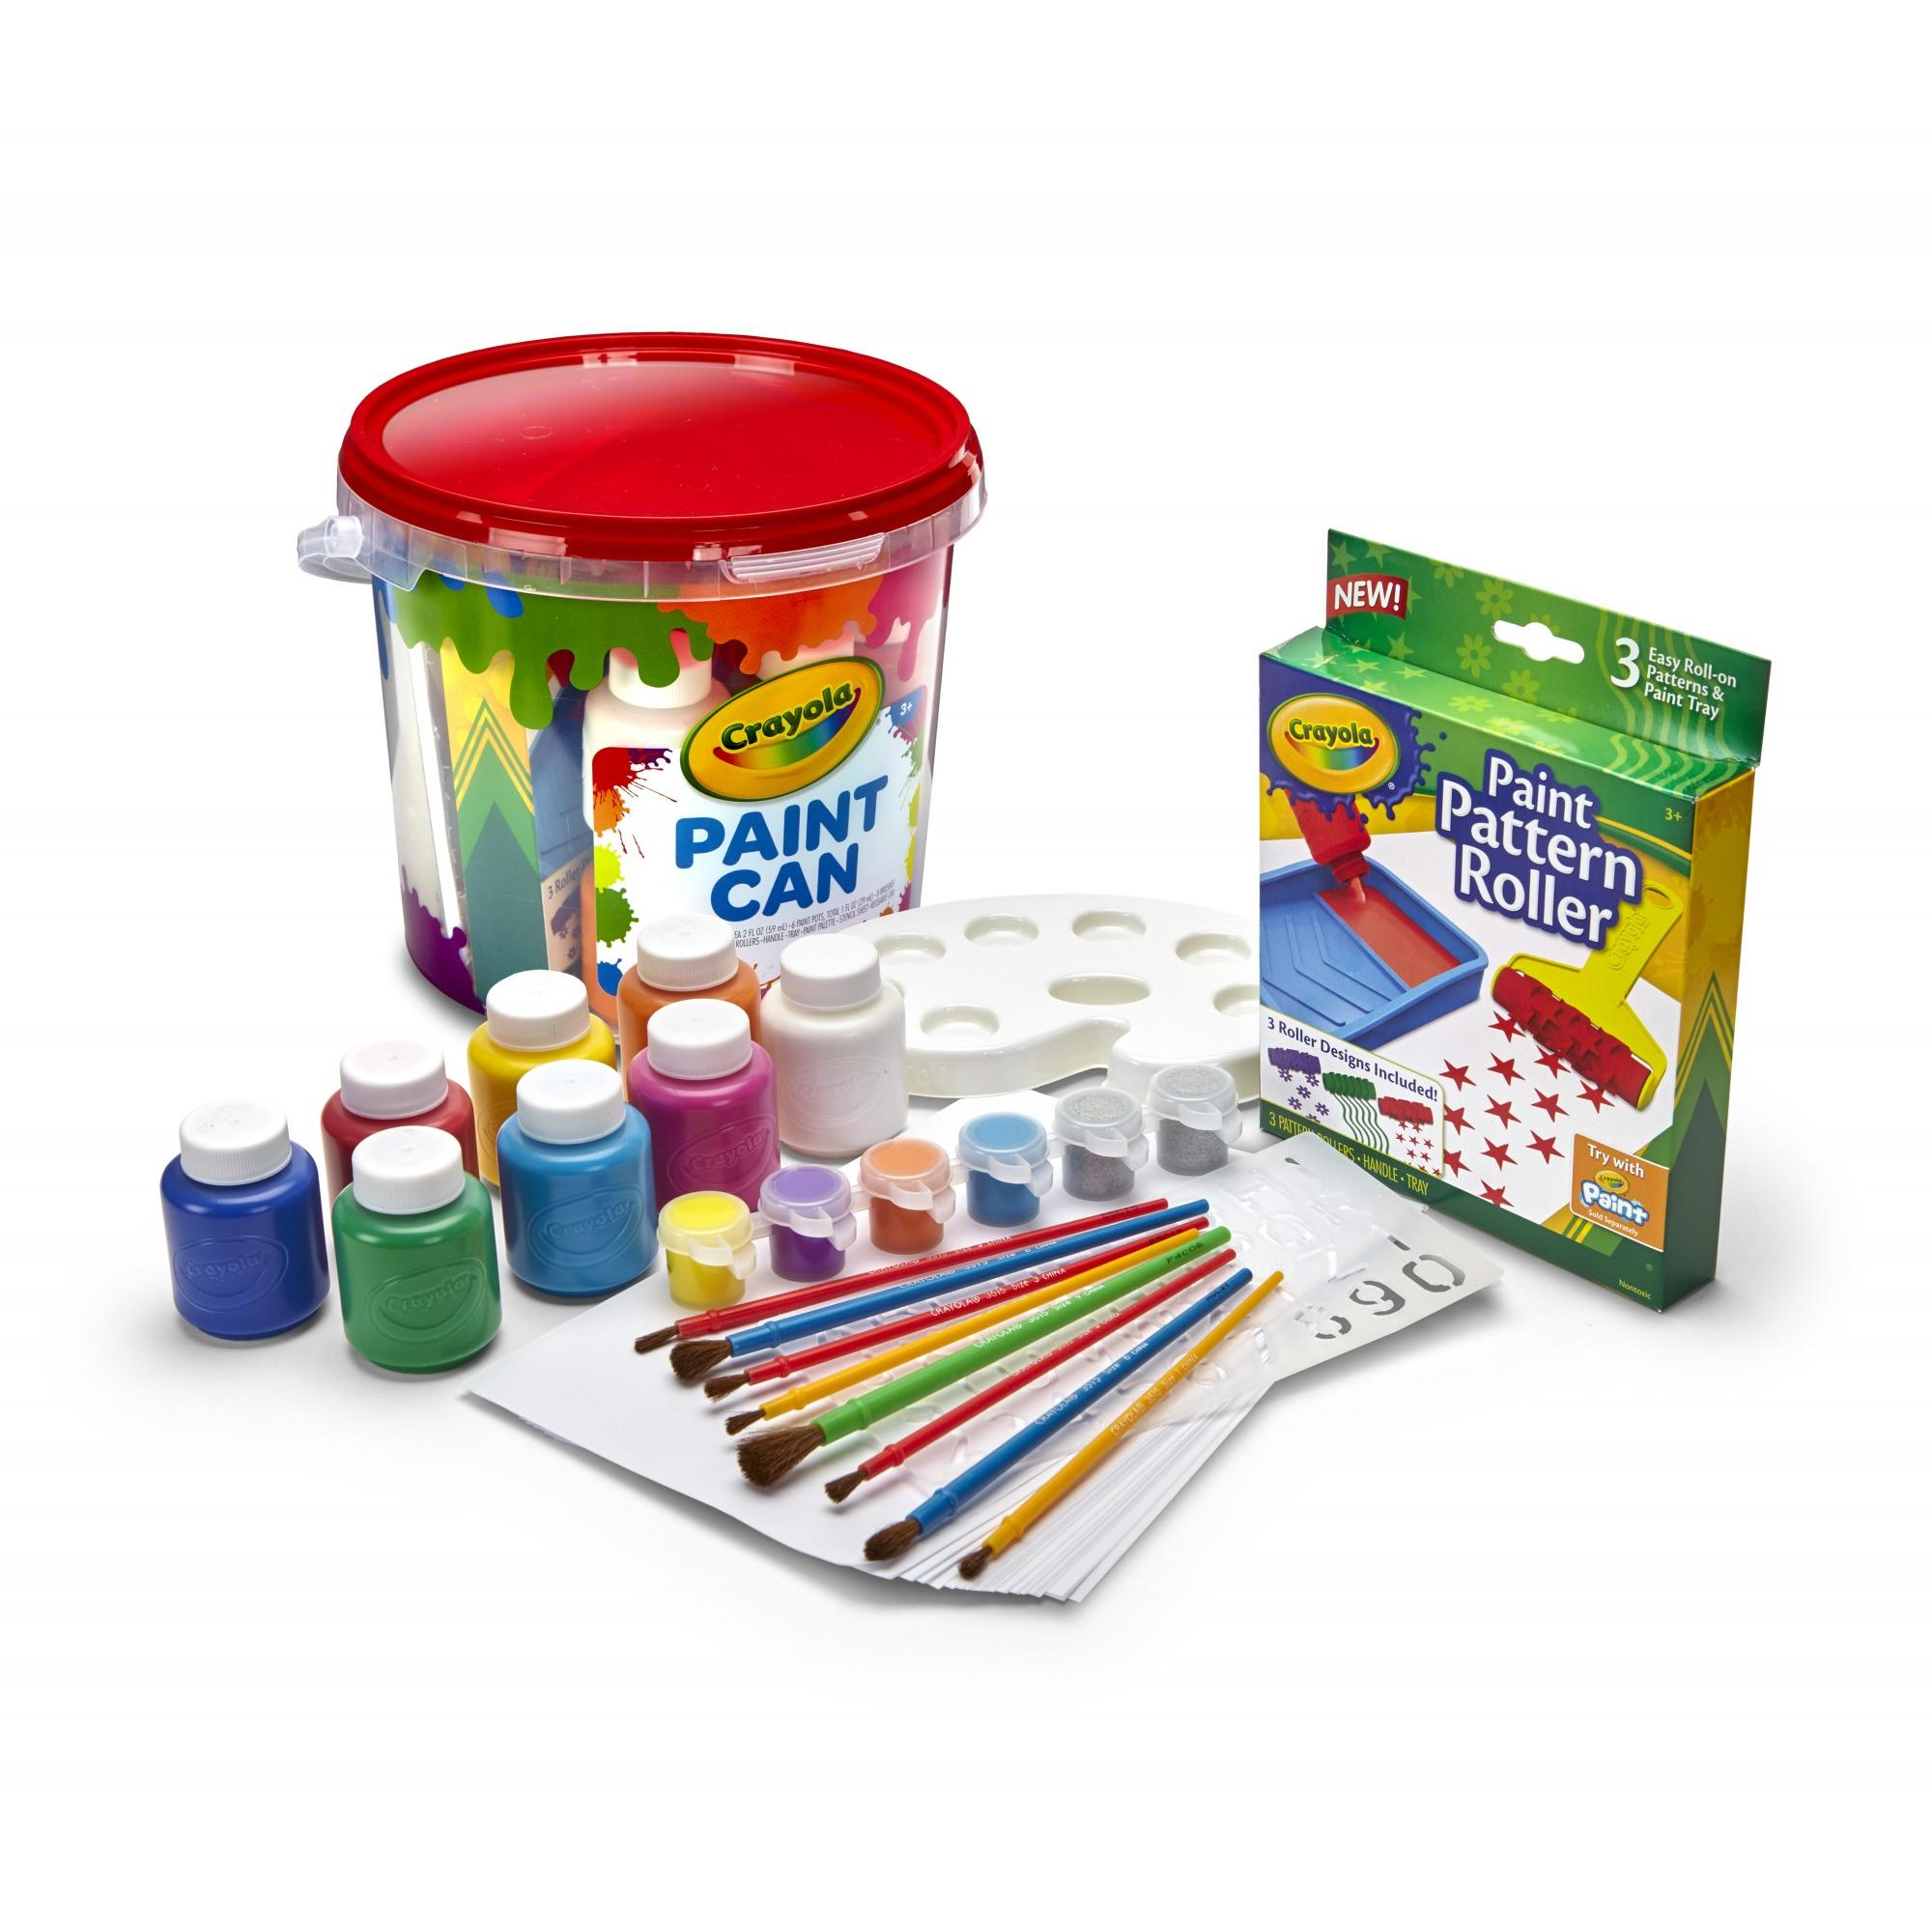 Crayola All-in-One Creative Paint Can, Red Great Gift for Kids by Crayola